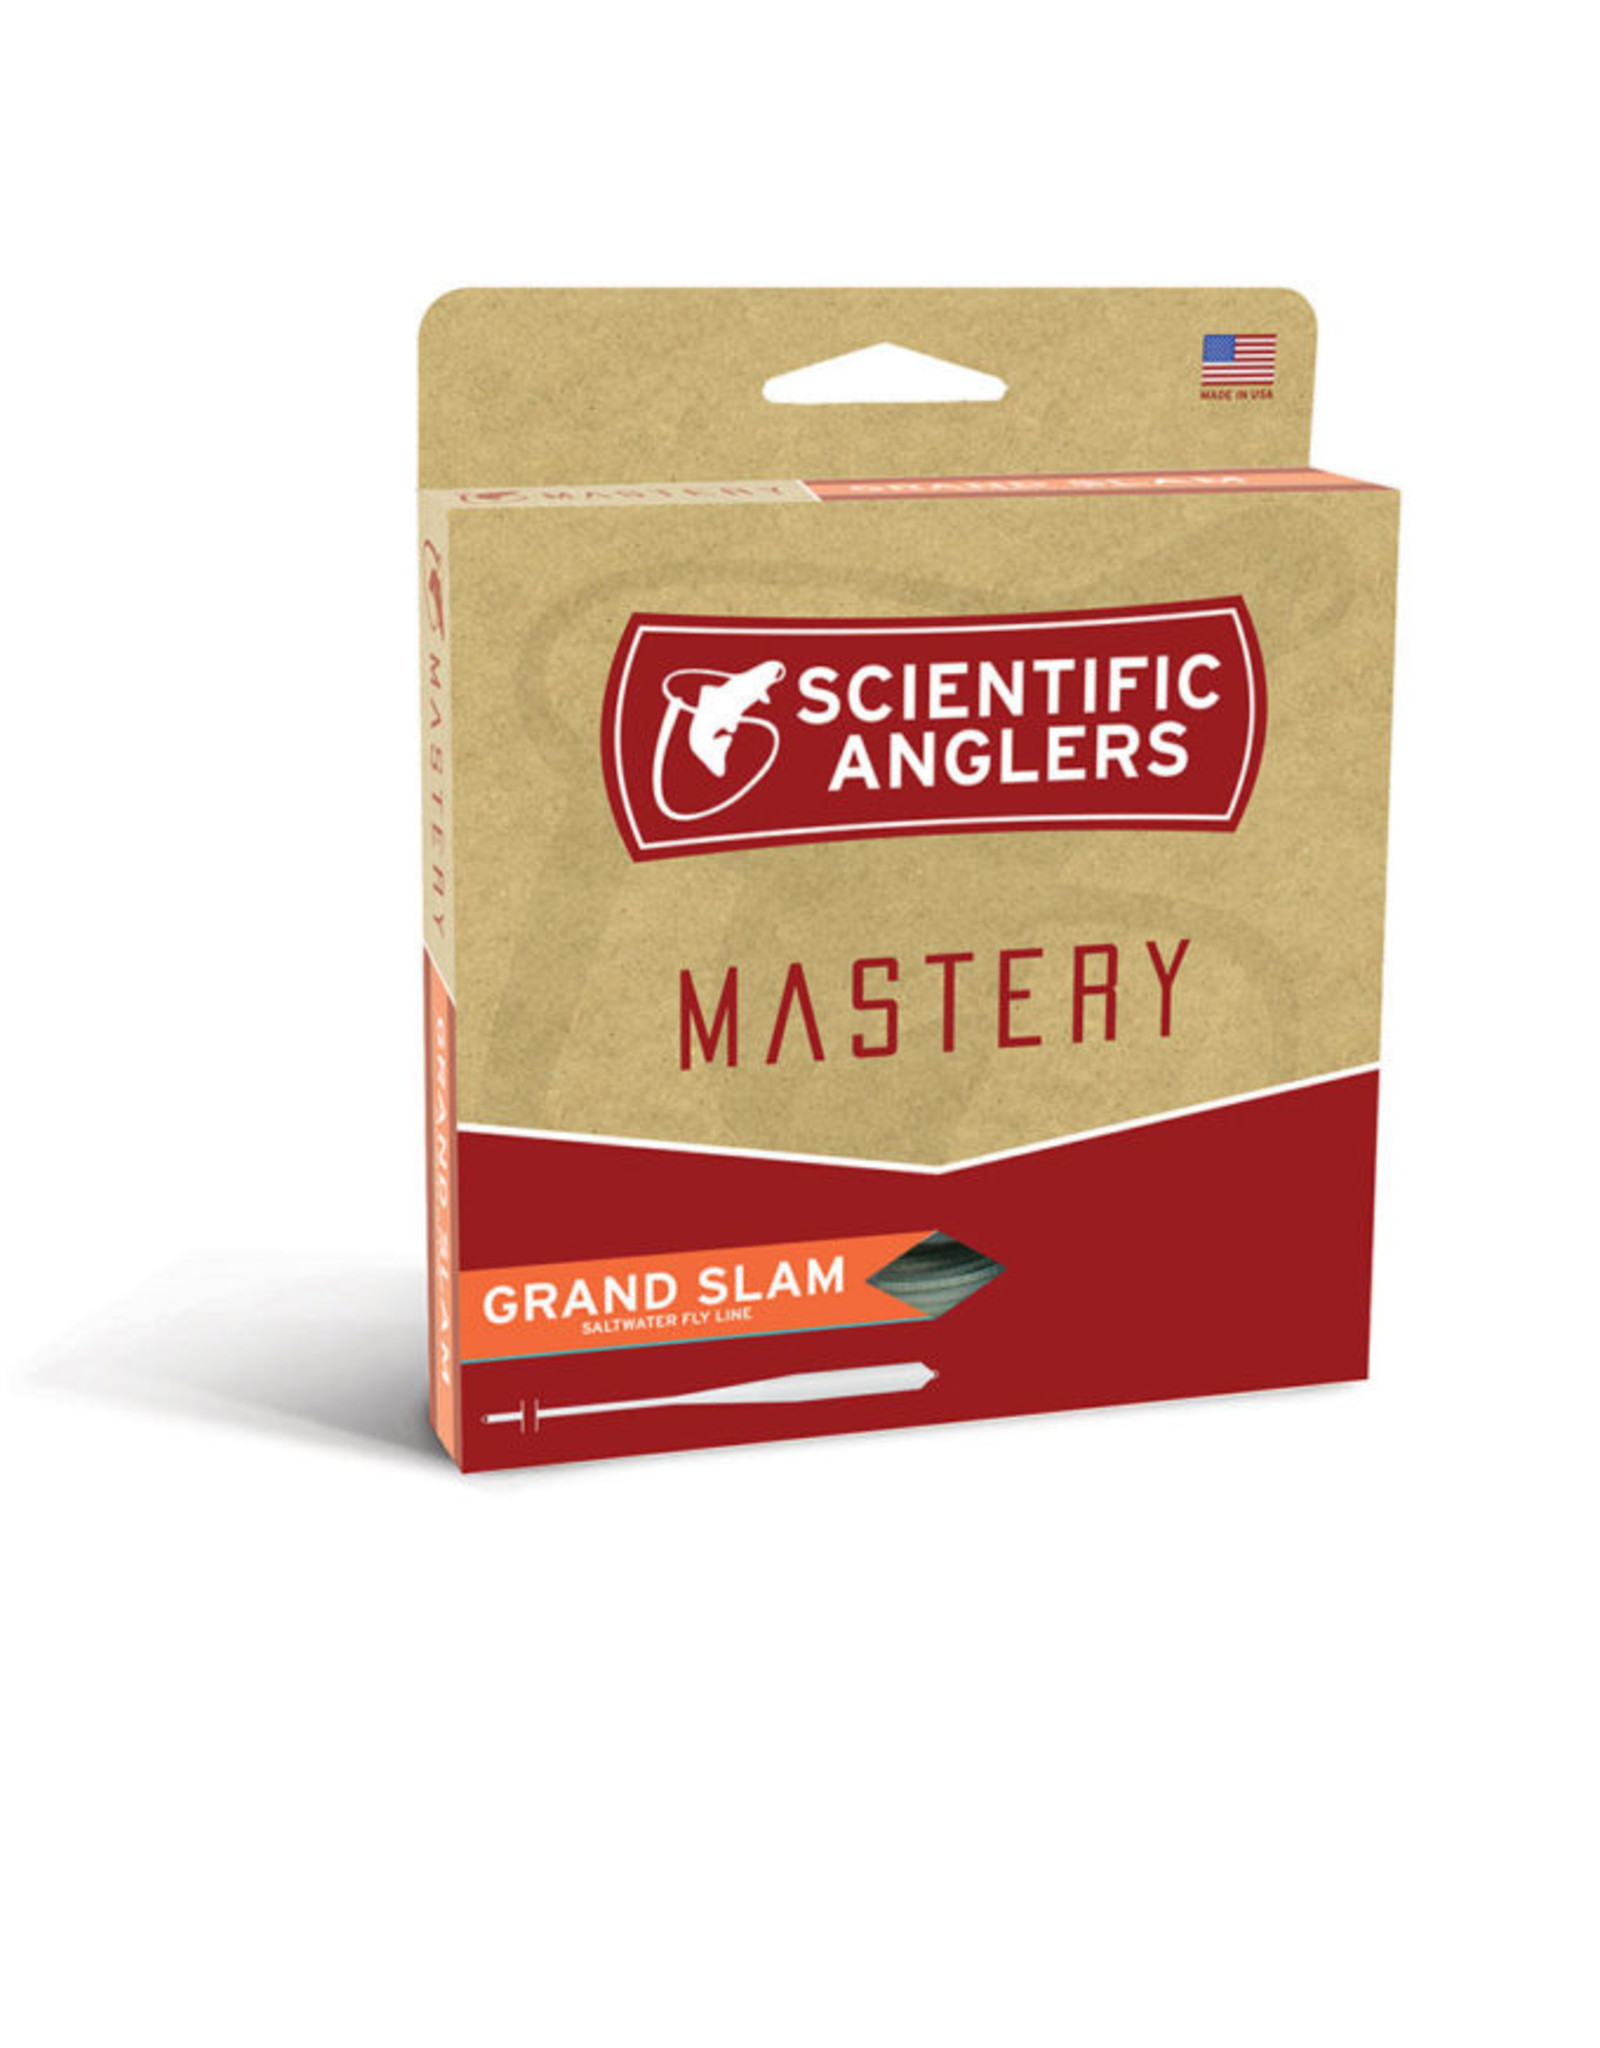 Scientific Anglers Scientific Anglers - Mastery Grand Slam Fly Line